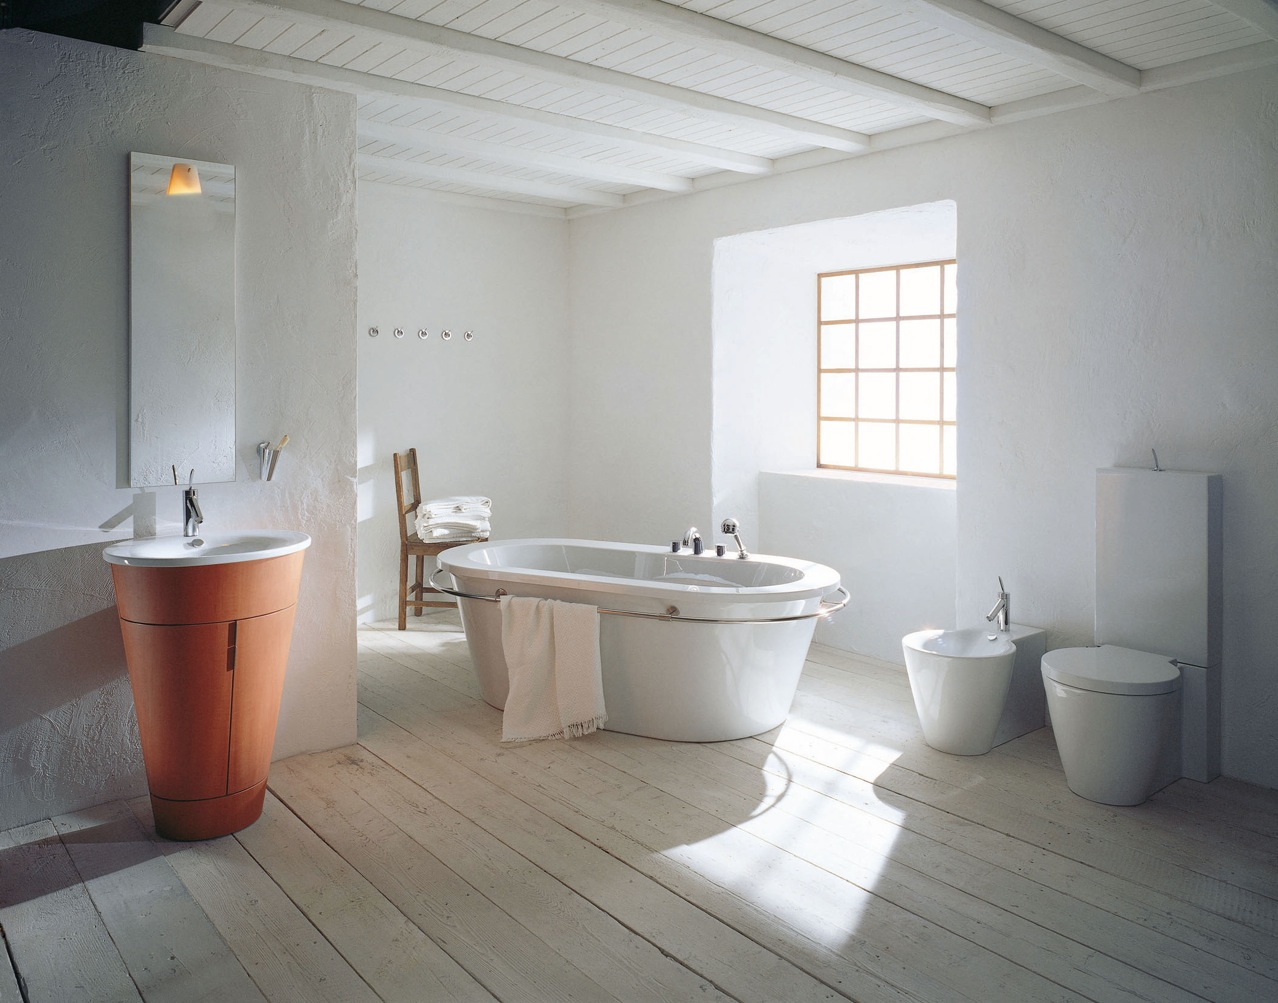 Bathroom Ideas Contemporary : Philipe starck rustic modern bathroom decor